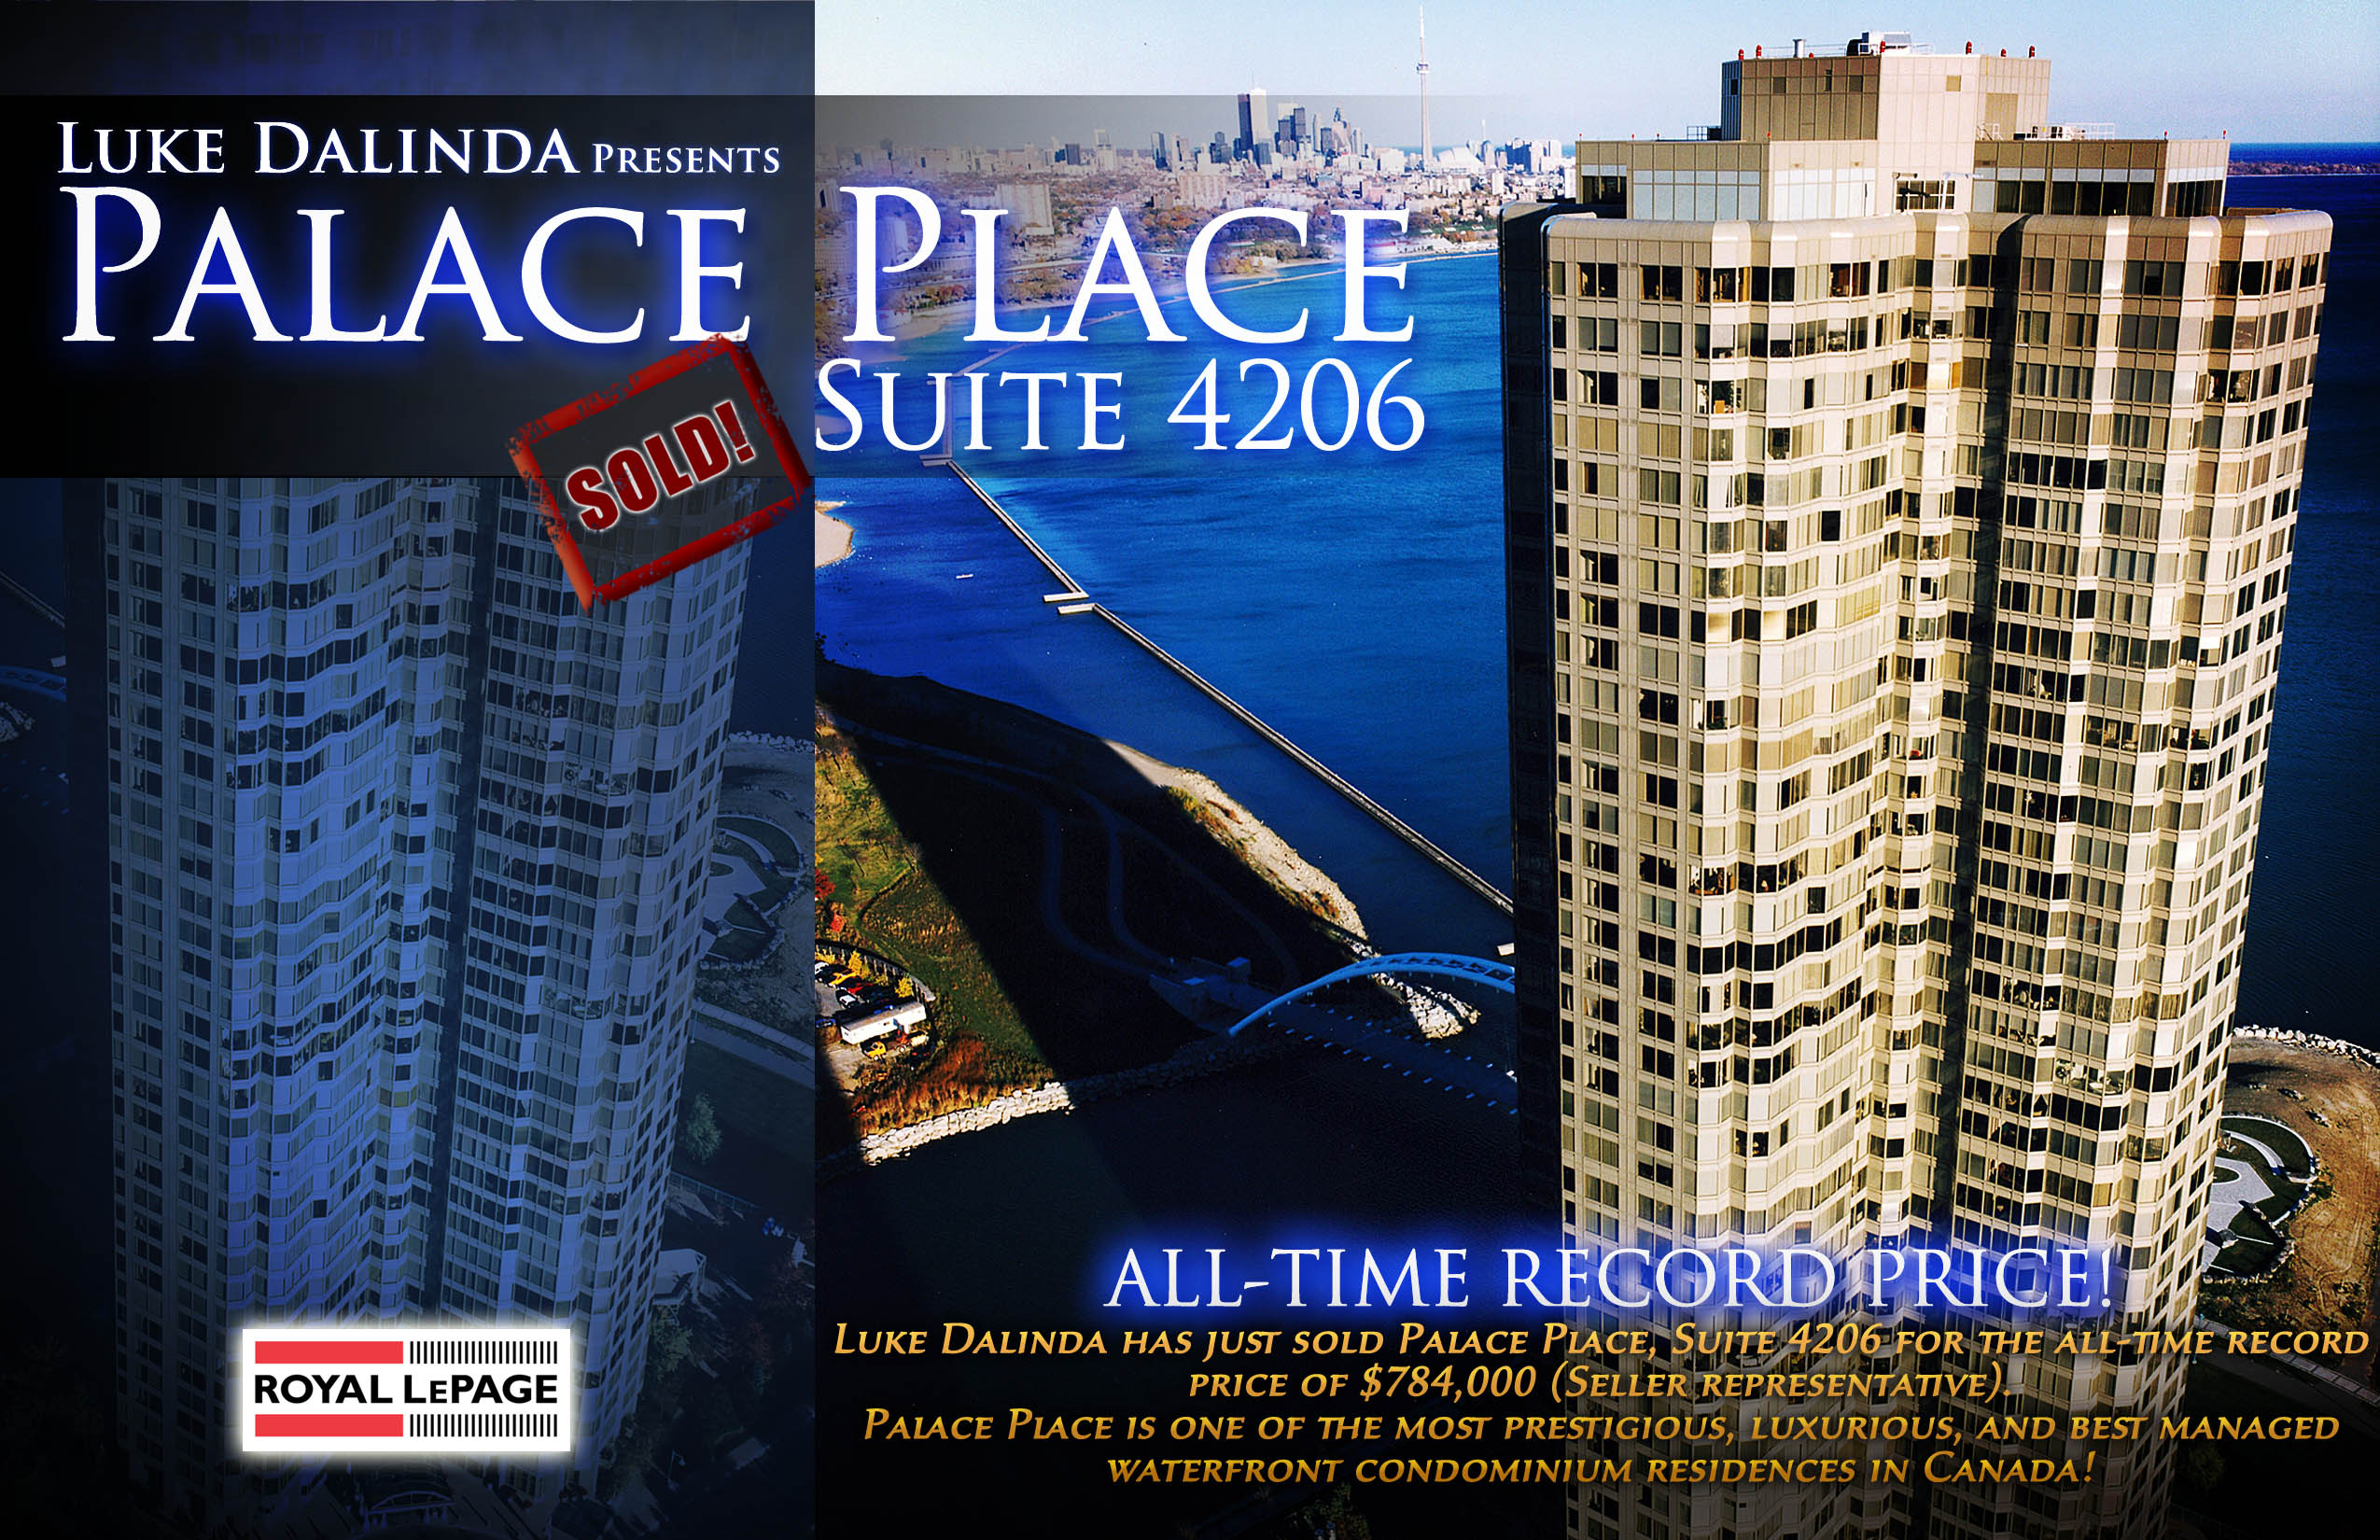 Just Sold Palace Place Suite 4206 For The All Time